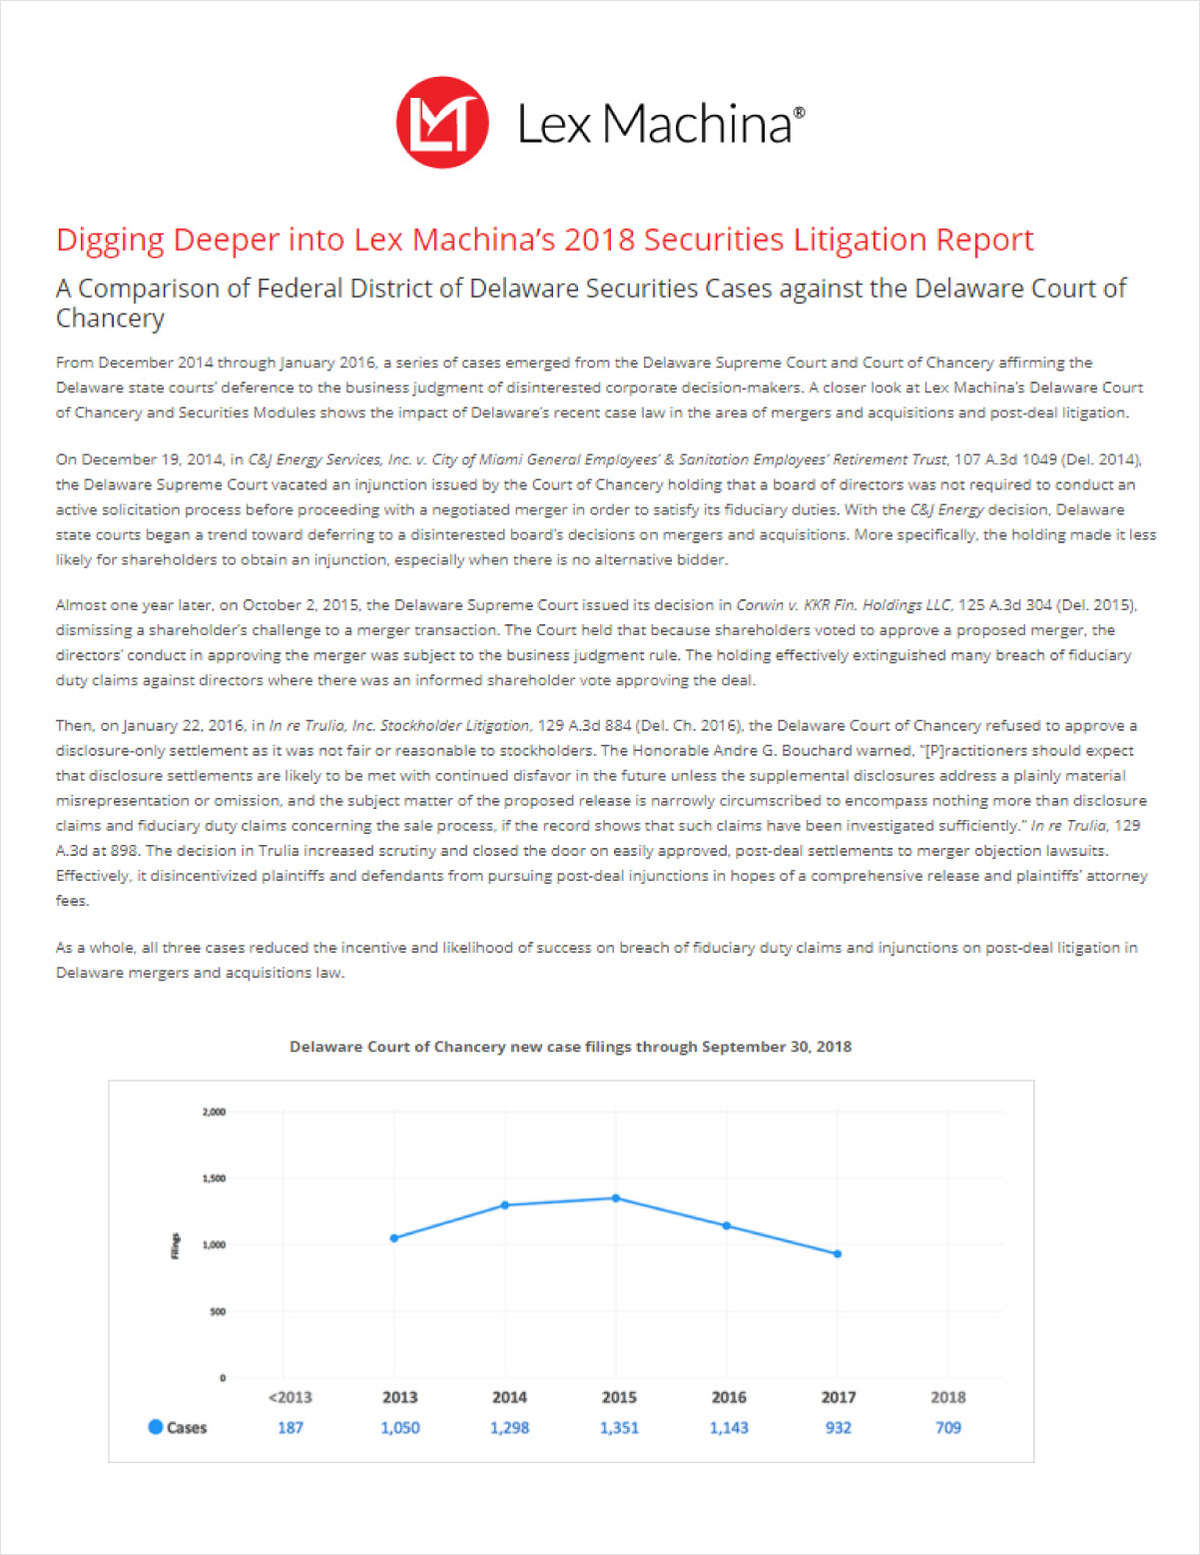 The Data Advantage: How Analytics Reveals Key Trends in 2018 Securities Litigation